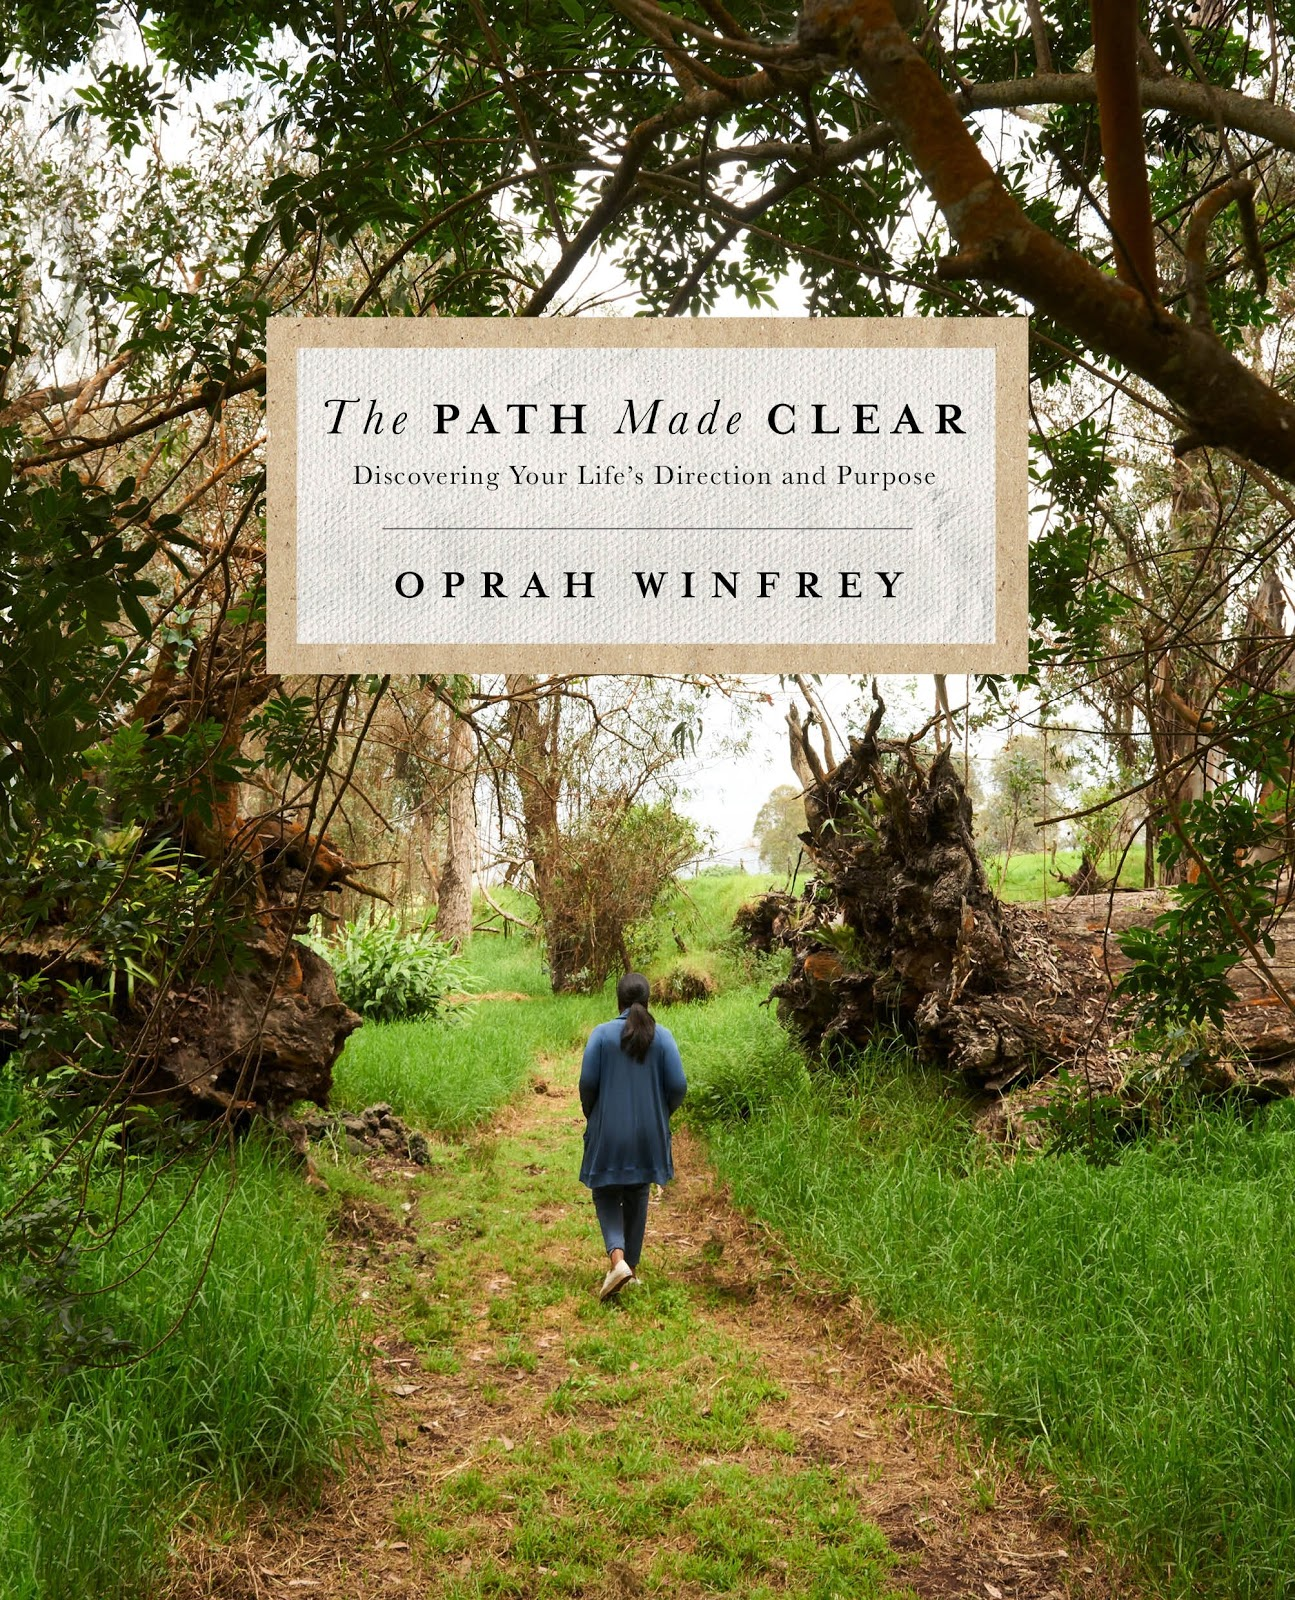 """The cover of Oprah Winfrey's book """"The Path Made Clear."""""""